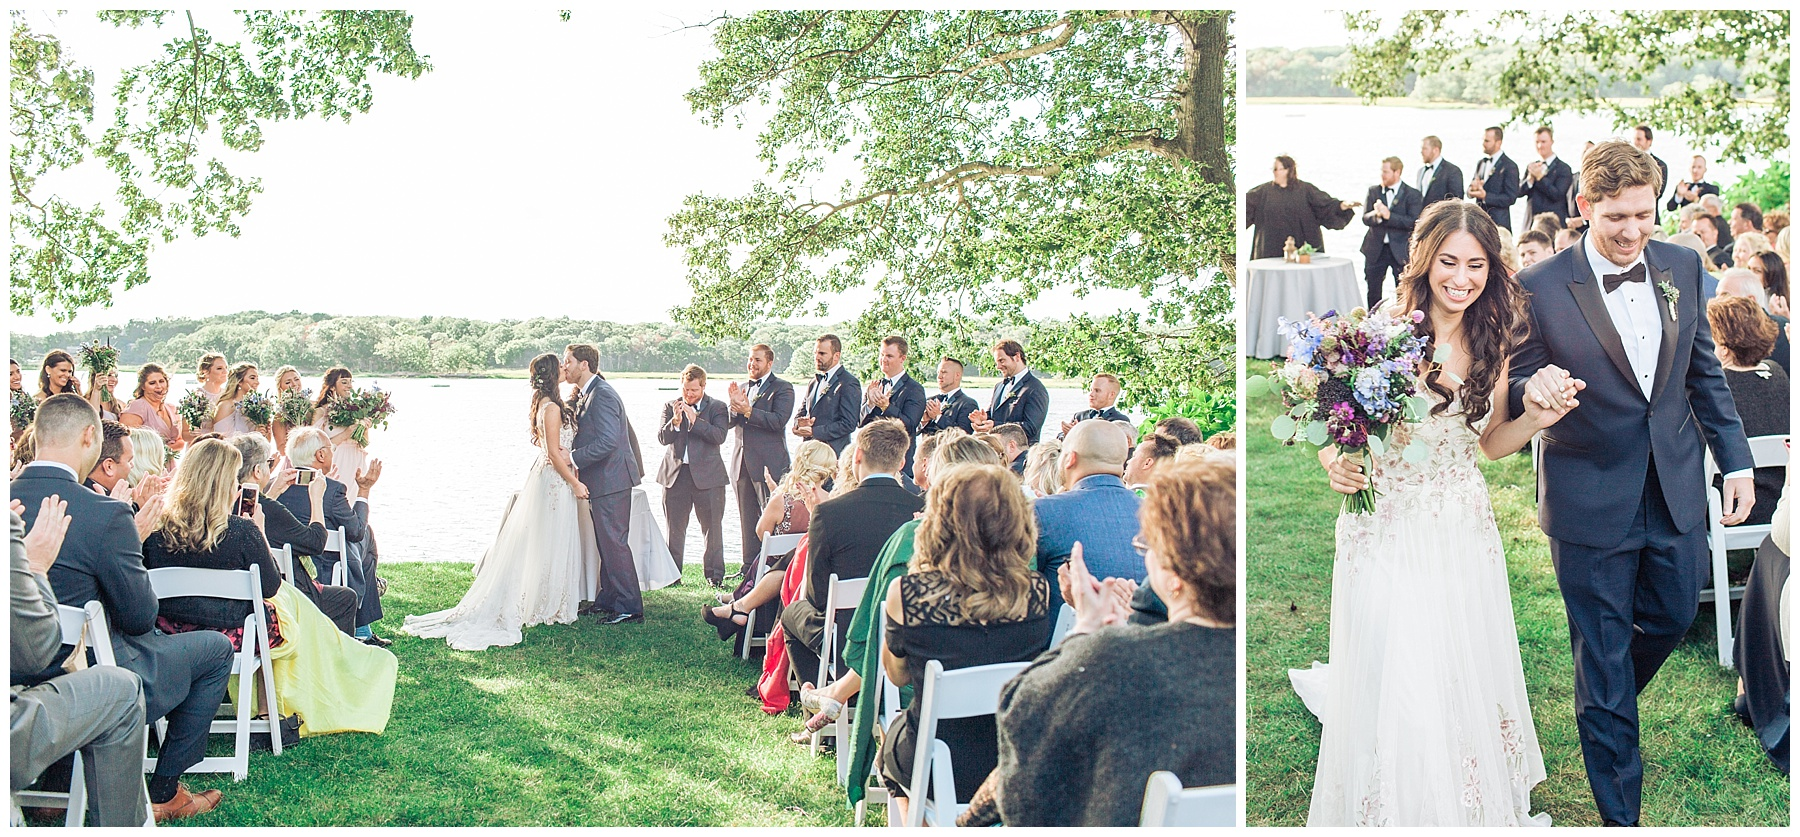 wanderlove-wedding-photographer-wainwright-rye-newyork-elegant-autumn-wedding-outdoor-wedding